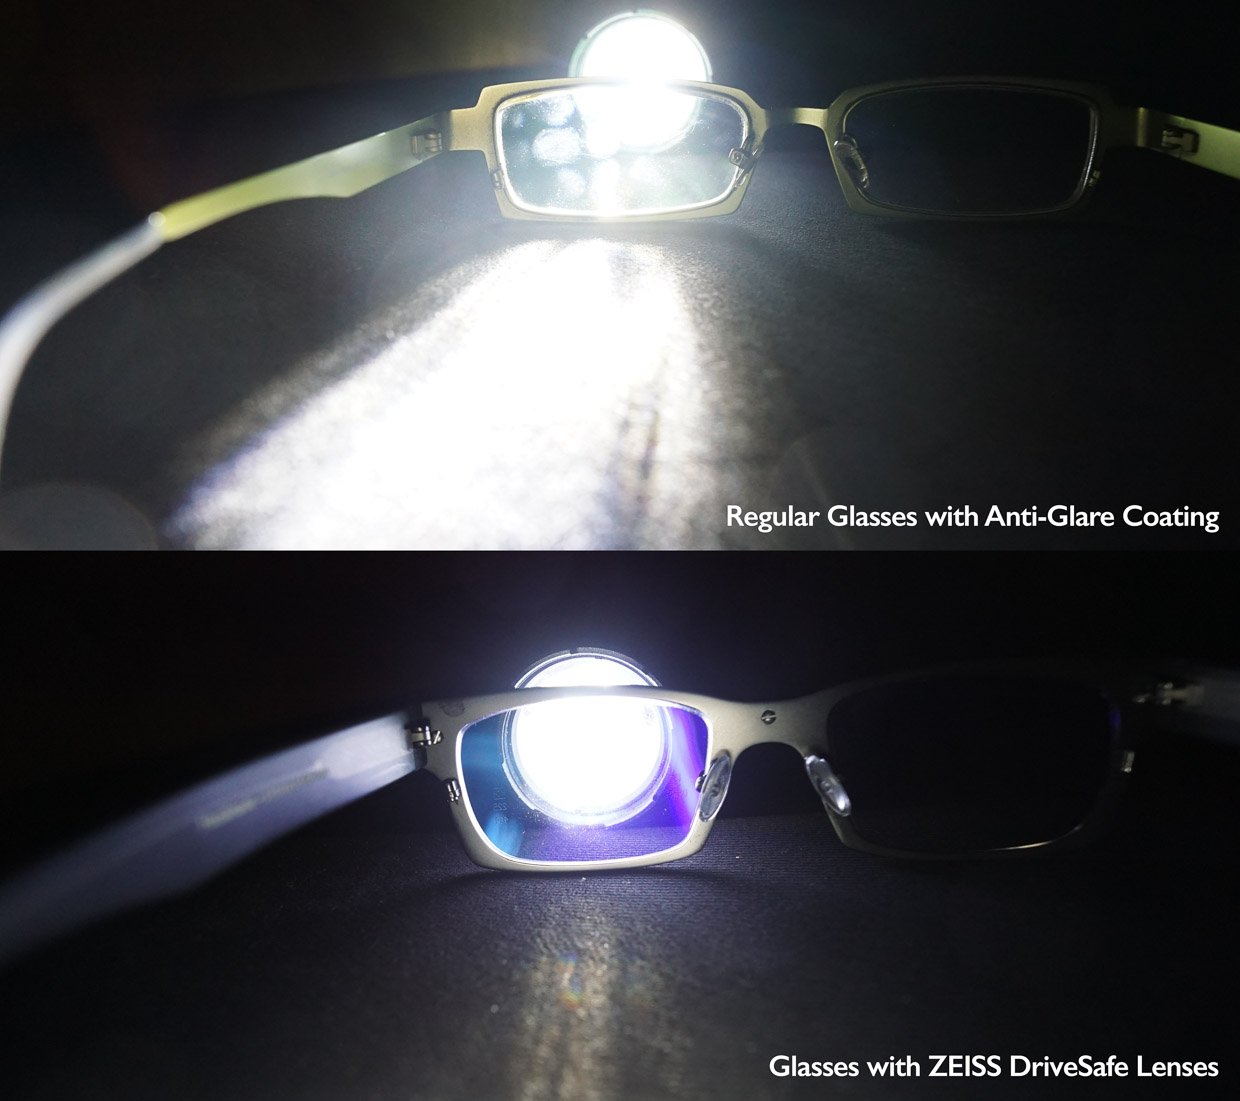 zeiss_drivesafe_lenses_glare_comparison_1